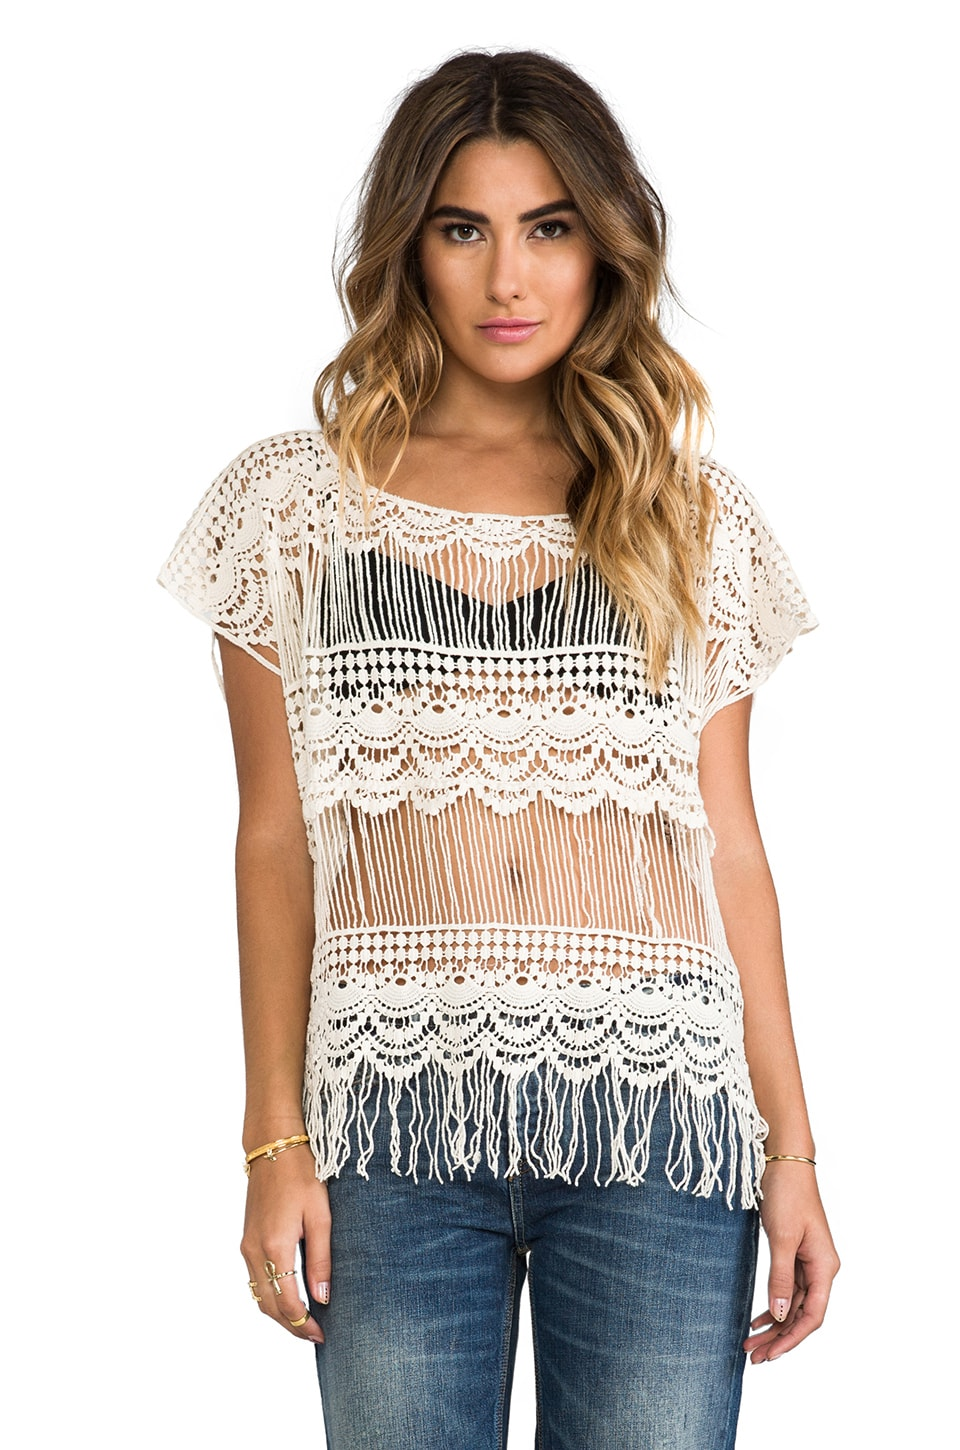 Gypsy Junkies Kali Crochet Tee in Natural